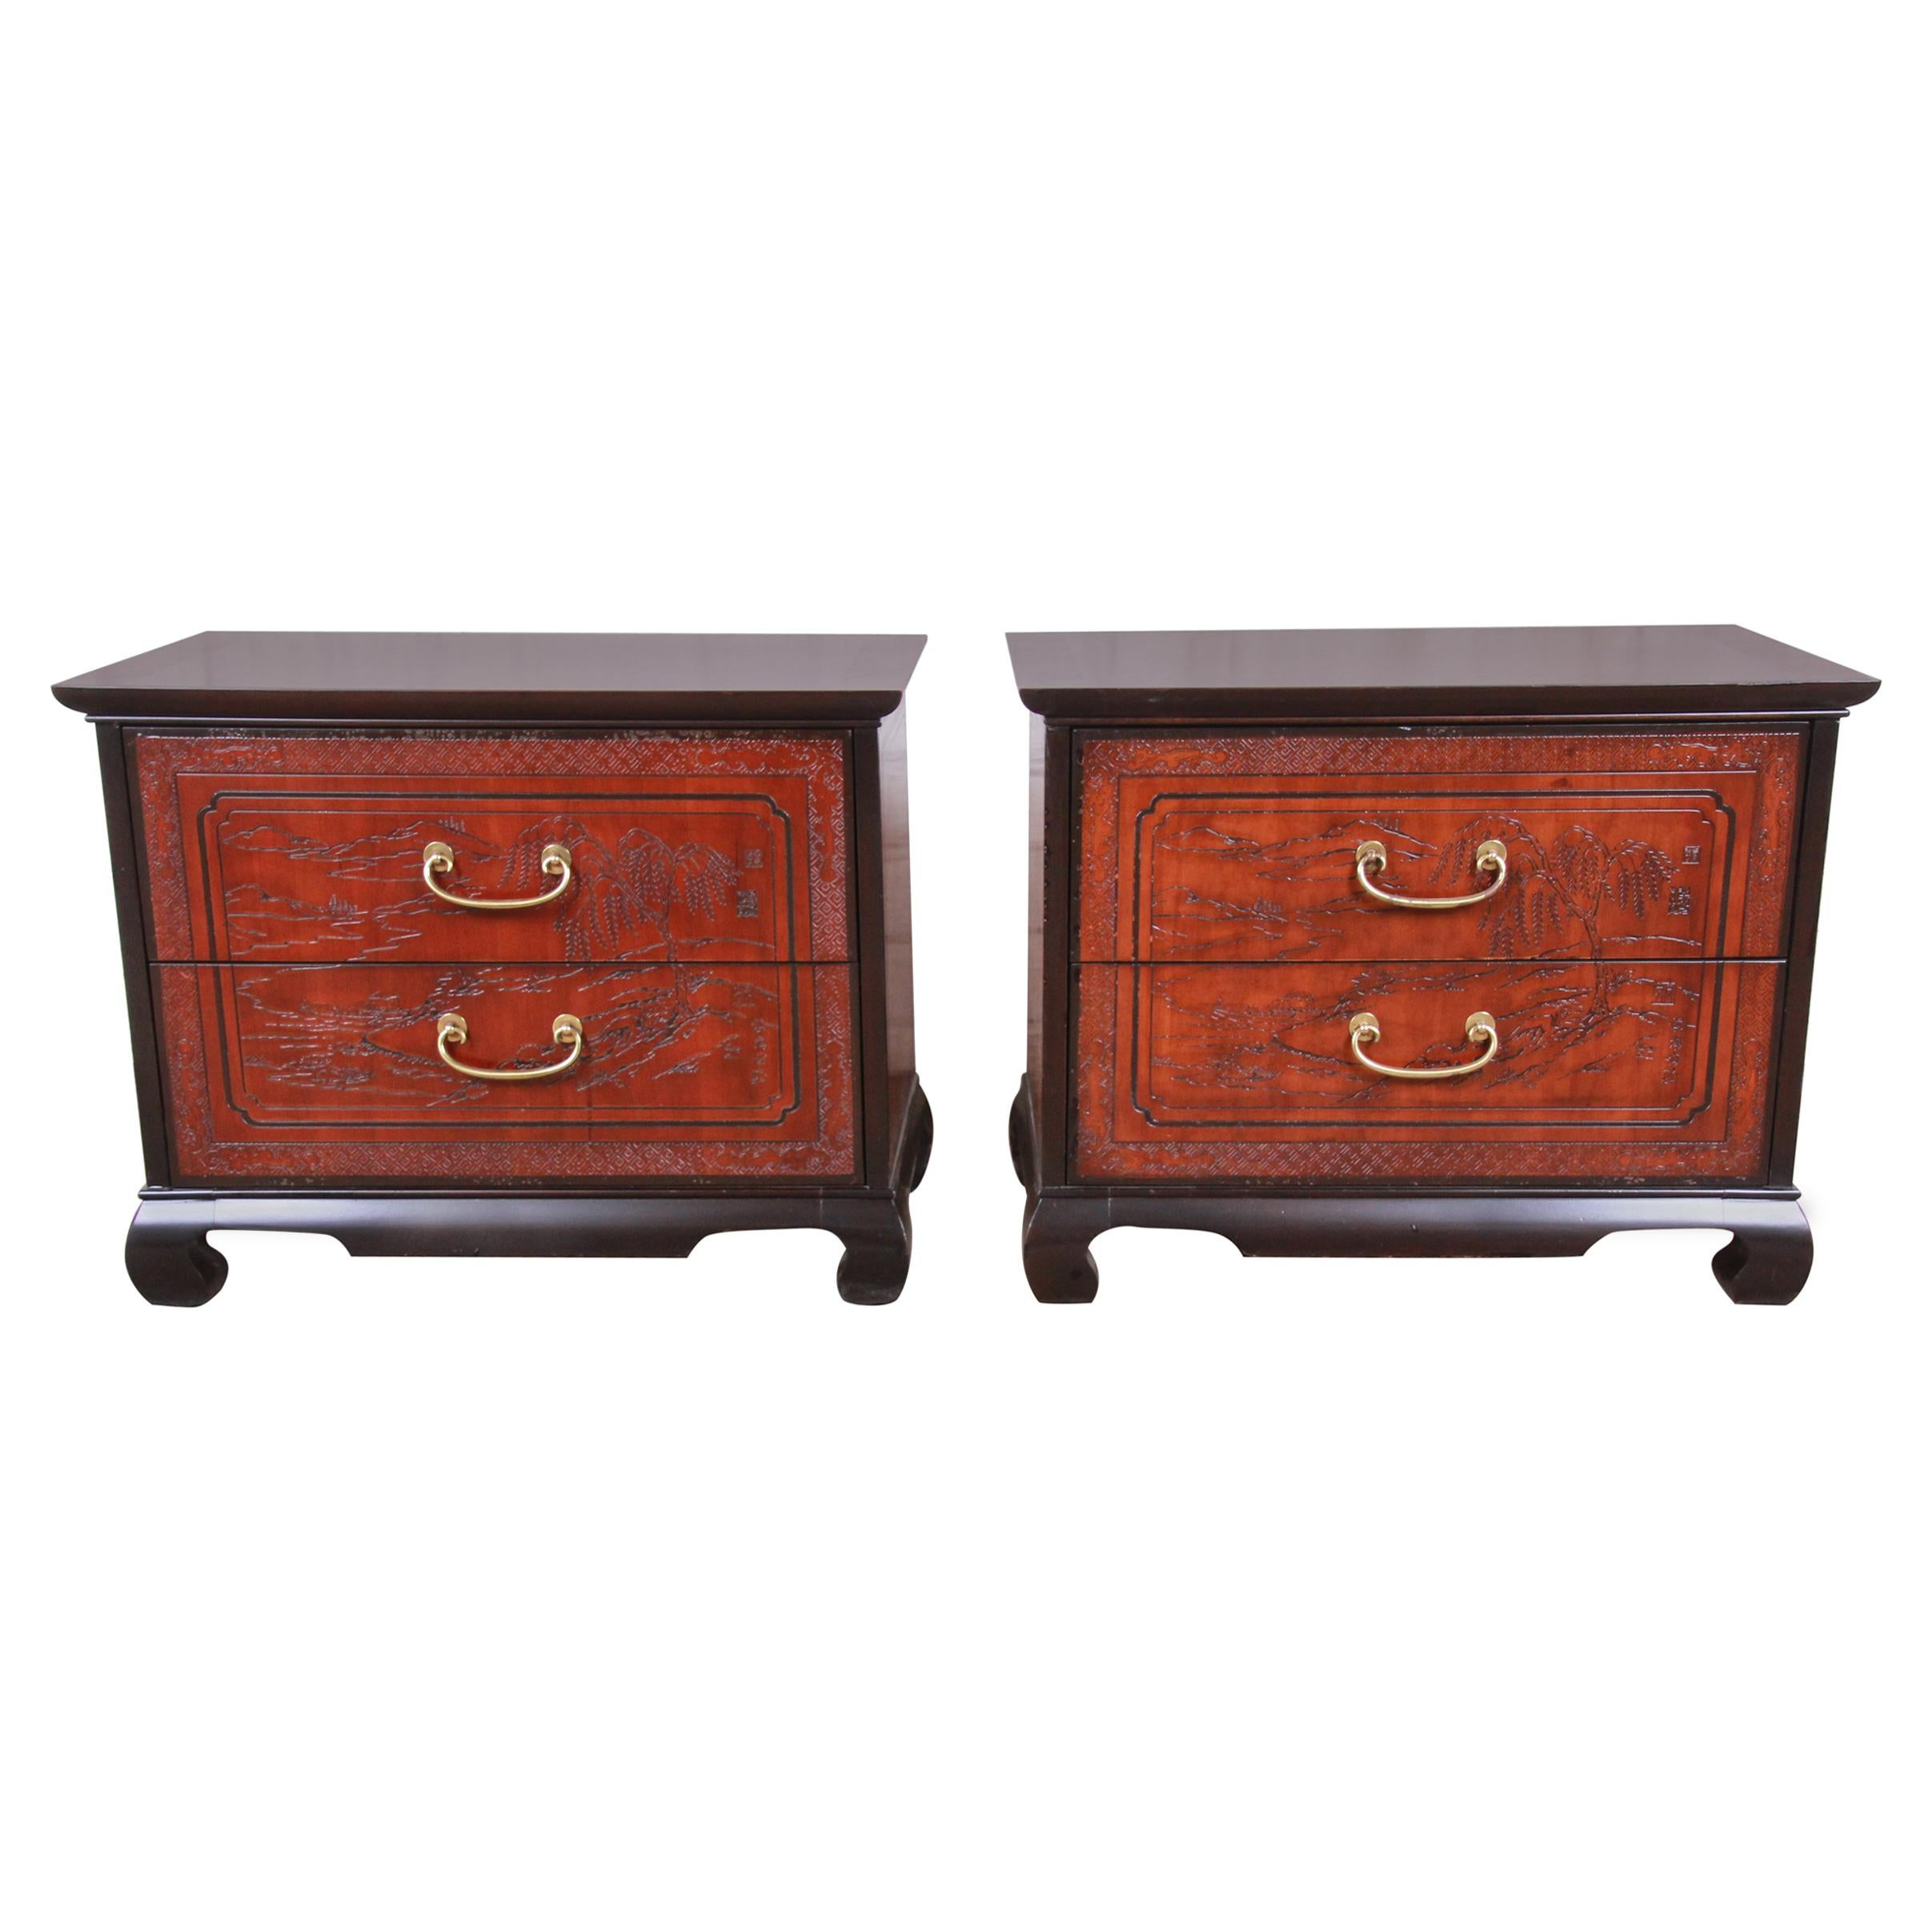 Drexel Heritage Hollywood Regency Chinoiserie Mahogany Nightstands, Pair